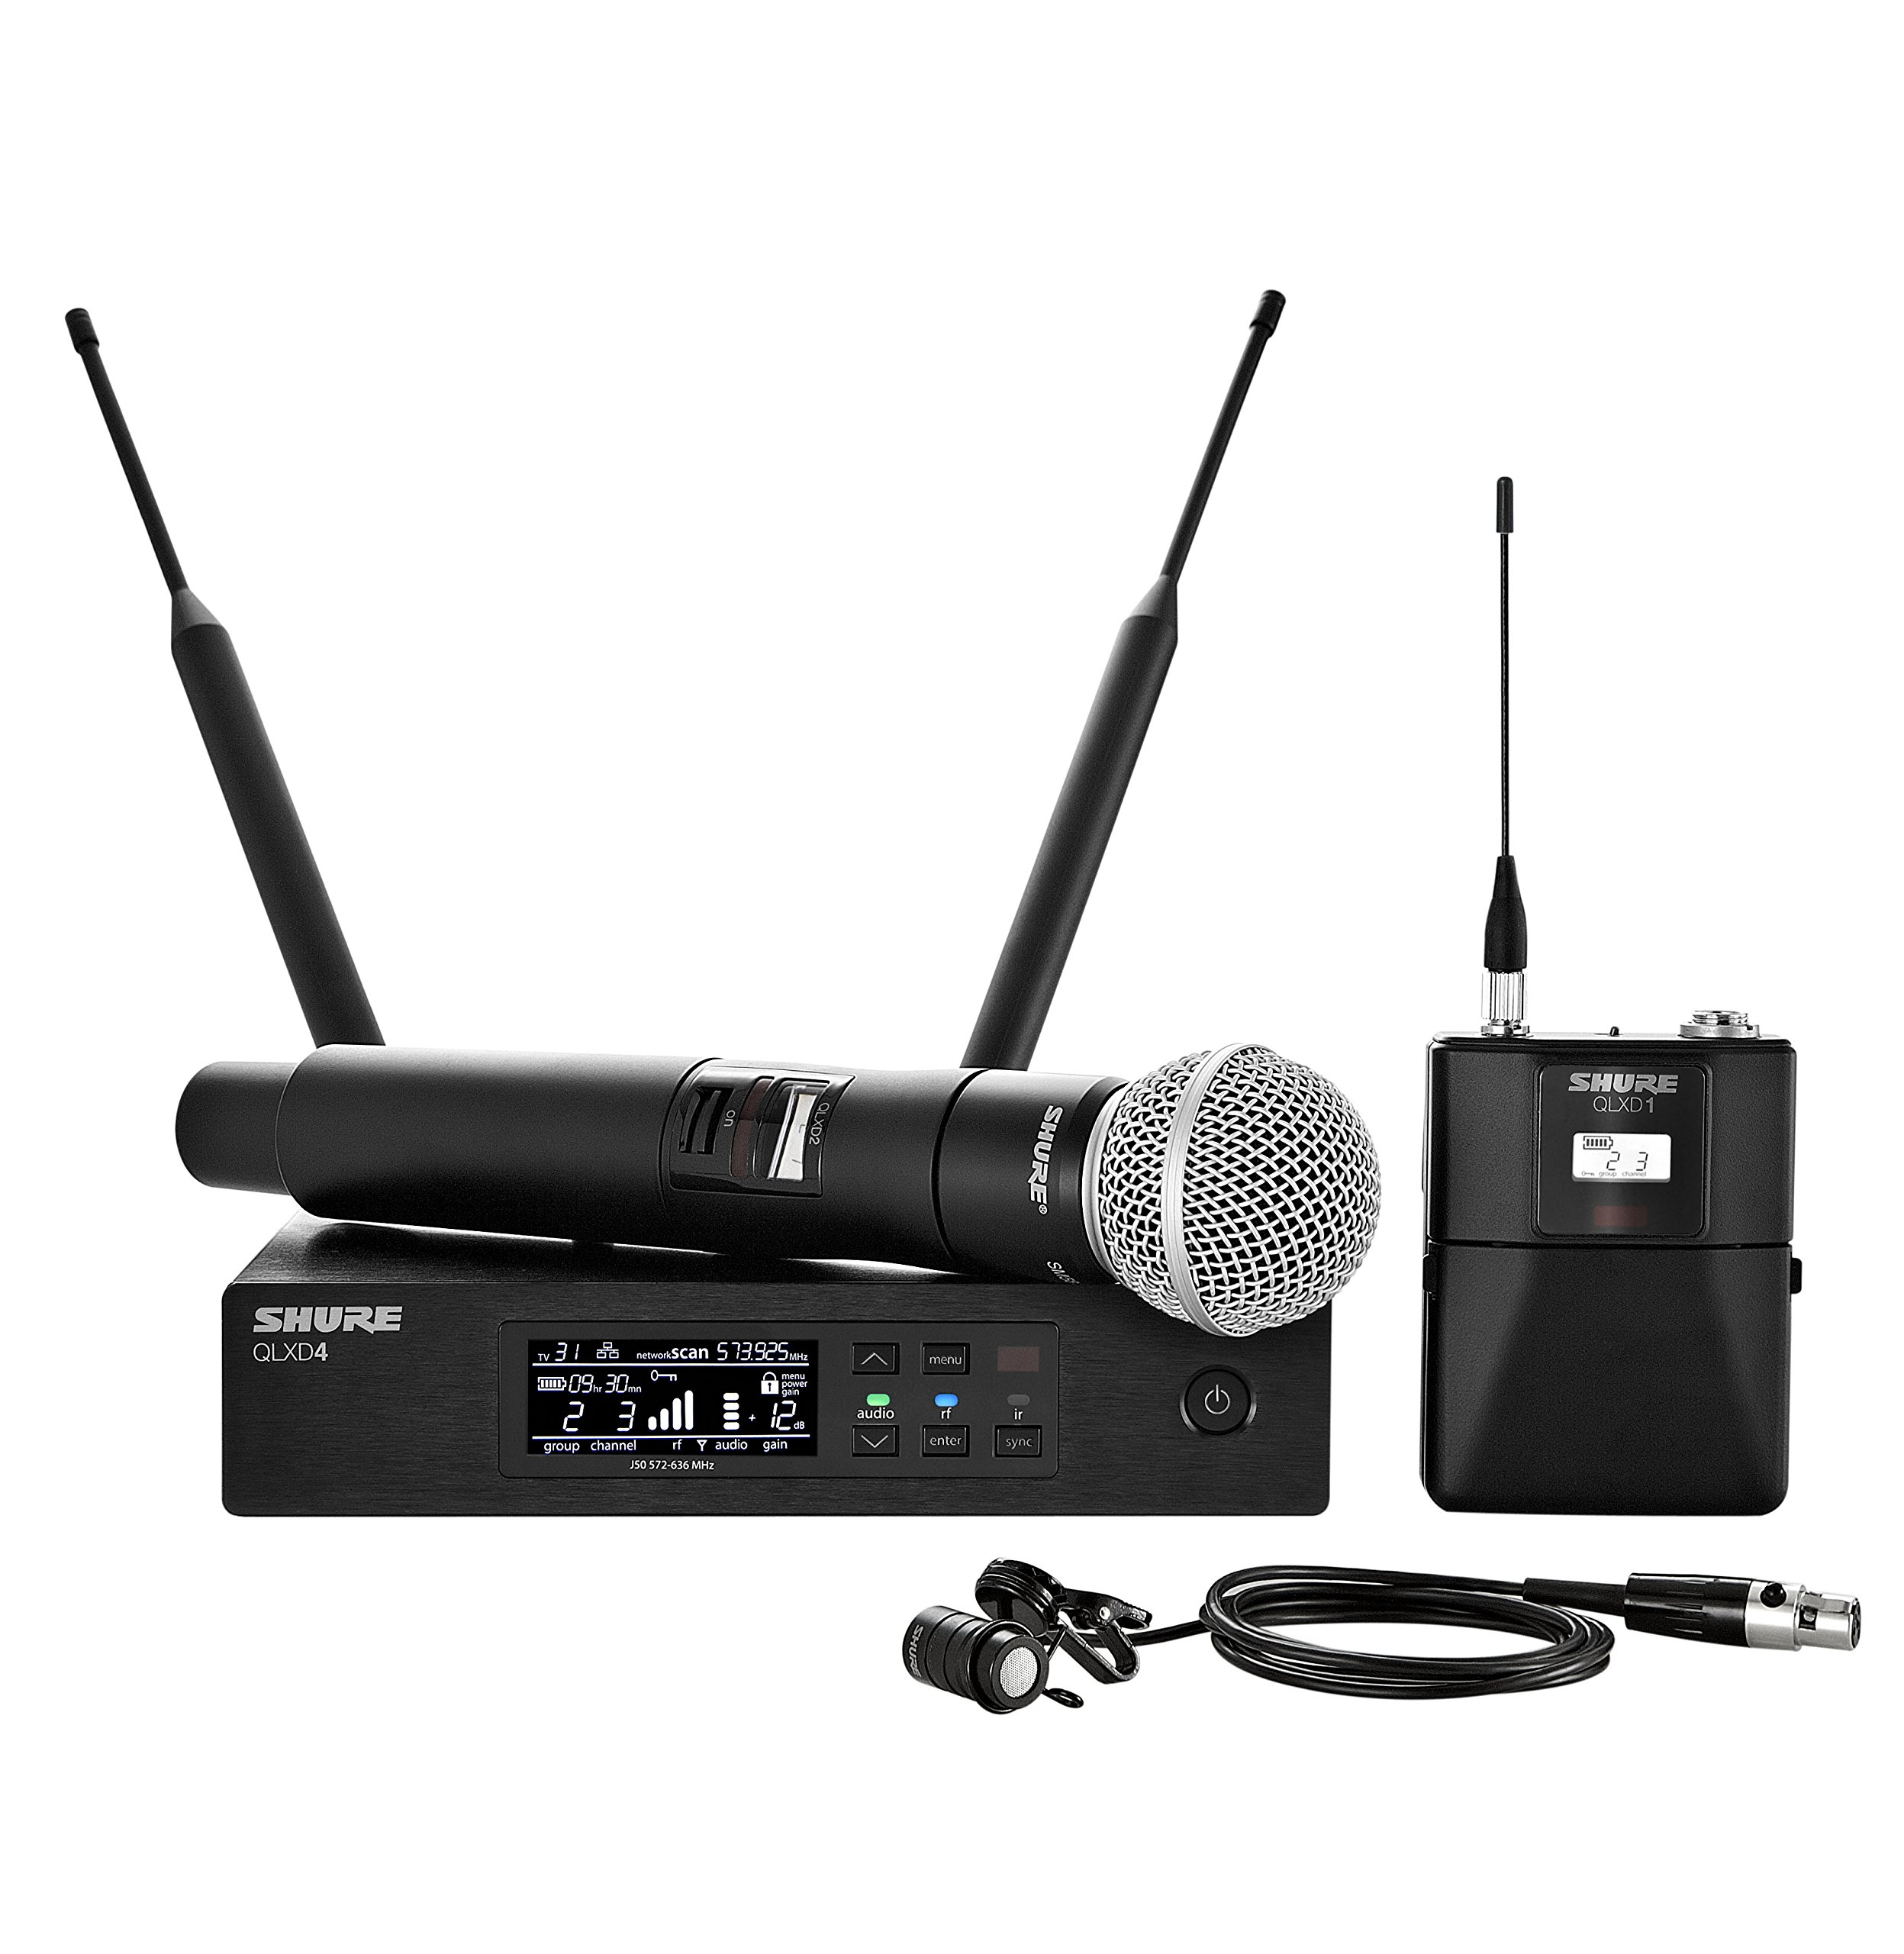 Shure QLXD124/85 Handheld and Lavalier Combo Wireless Microphone System with WL185 and SM58, G50 by Shure